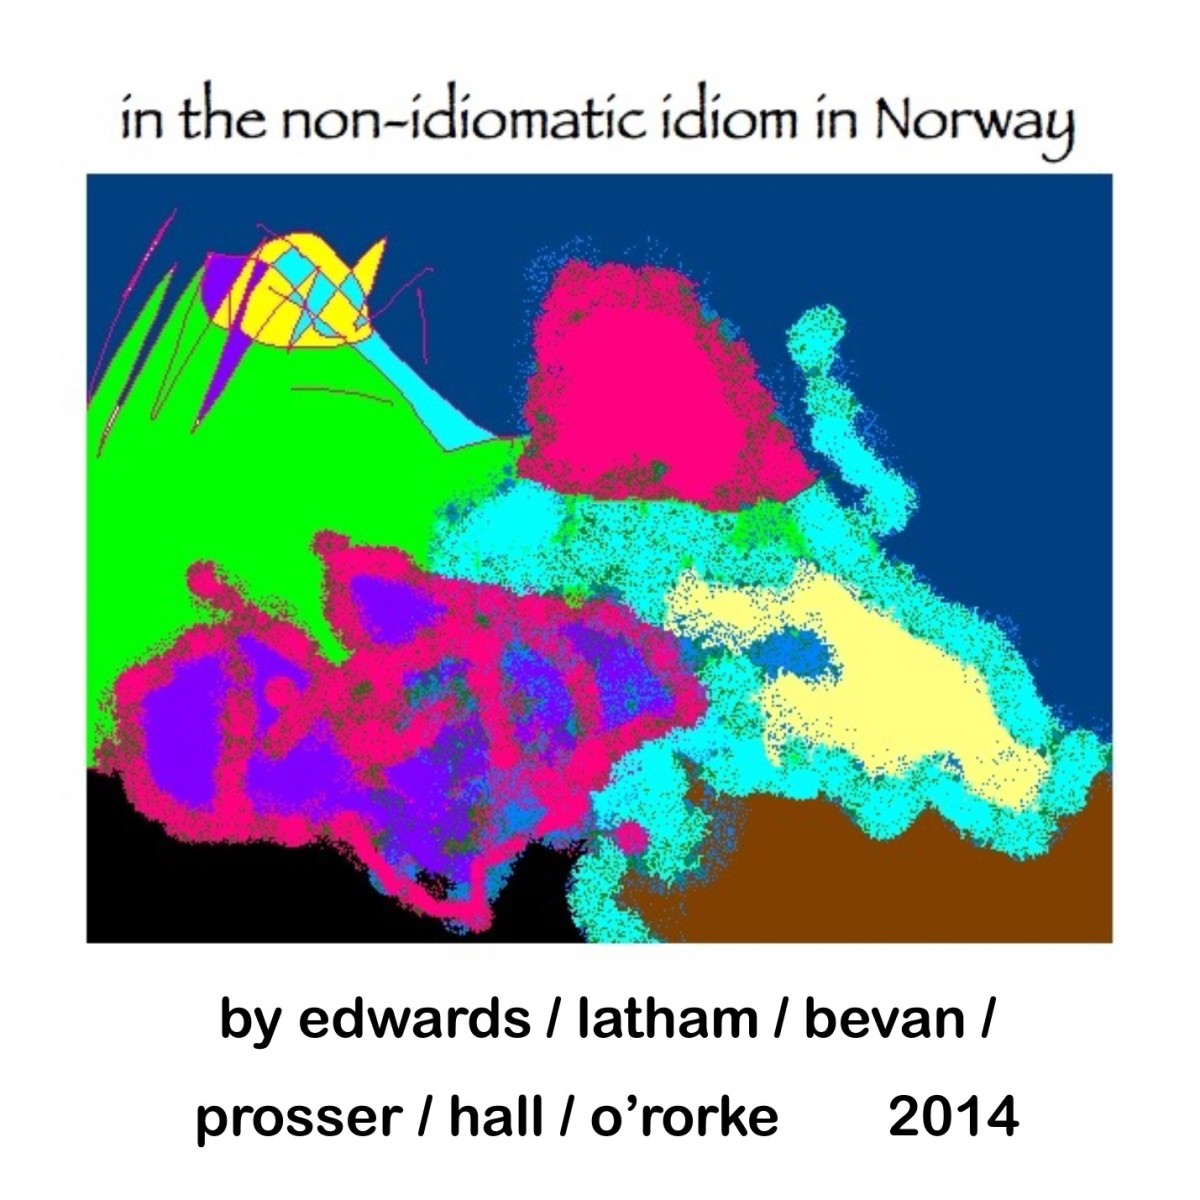 in the non-idiomatic idiom in Norway (part 2,2014)